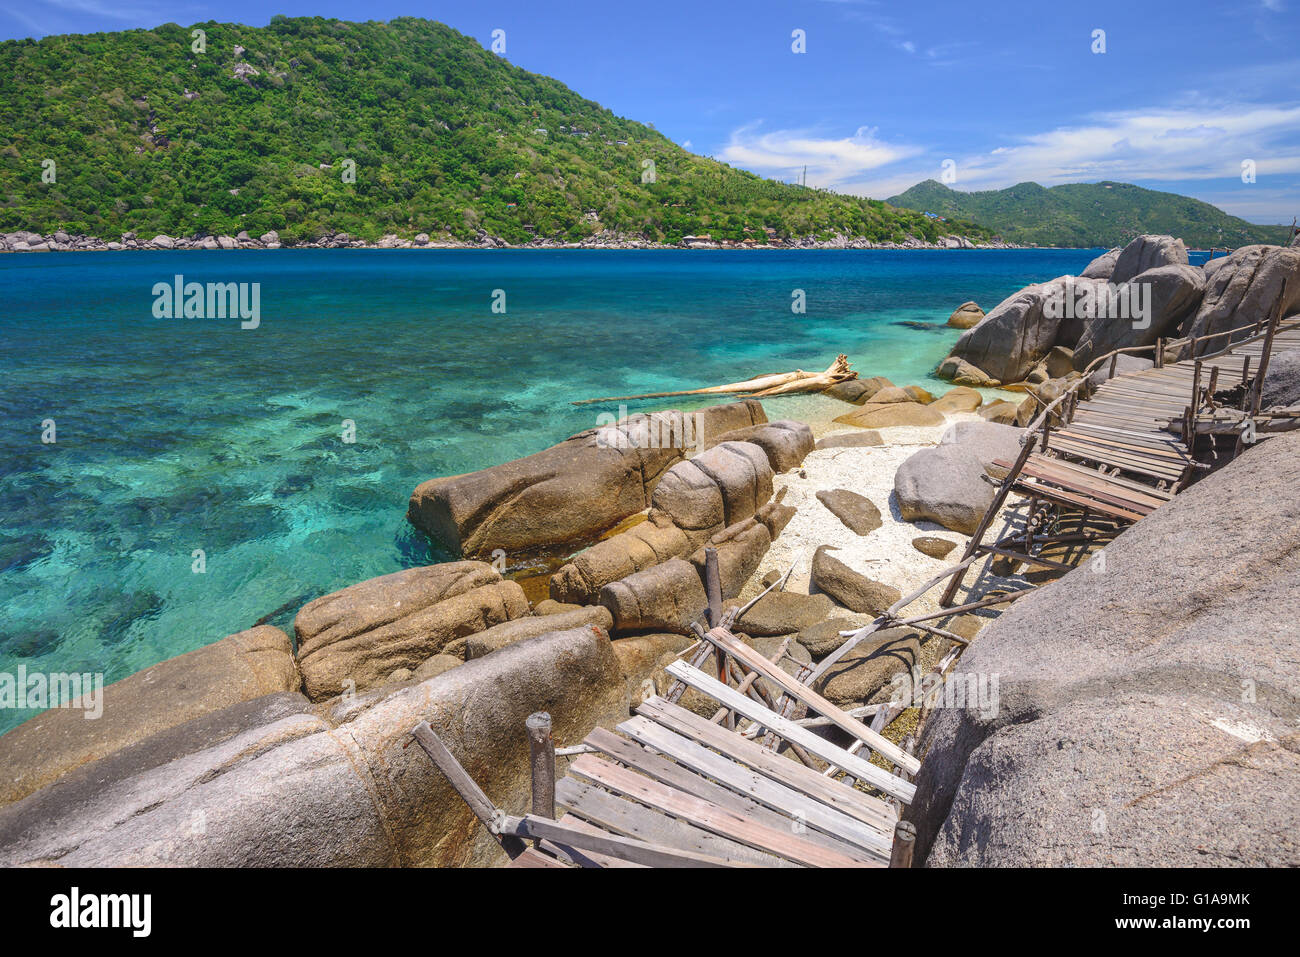 Koh Nangyuan island off the coast of Koh Tao in Thailand - Stock Image